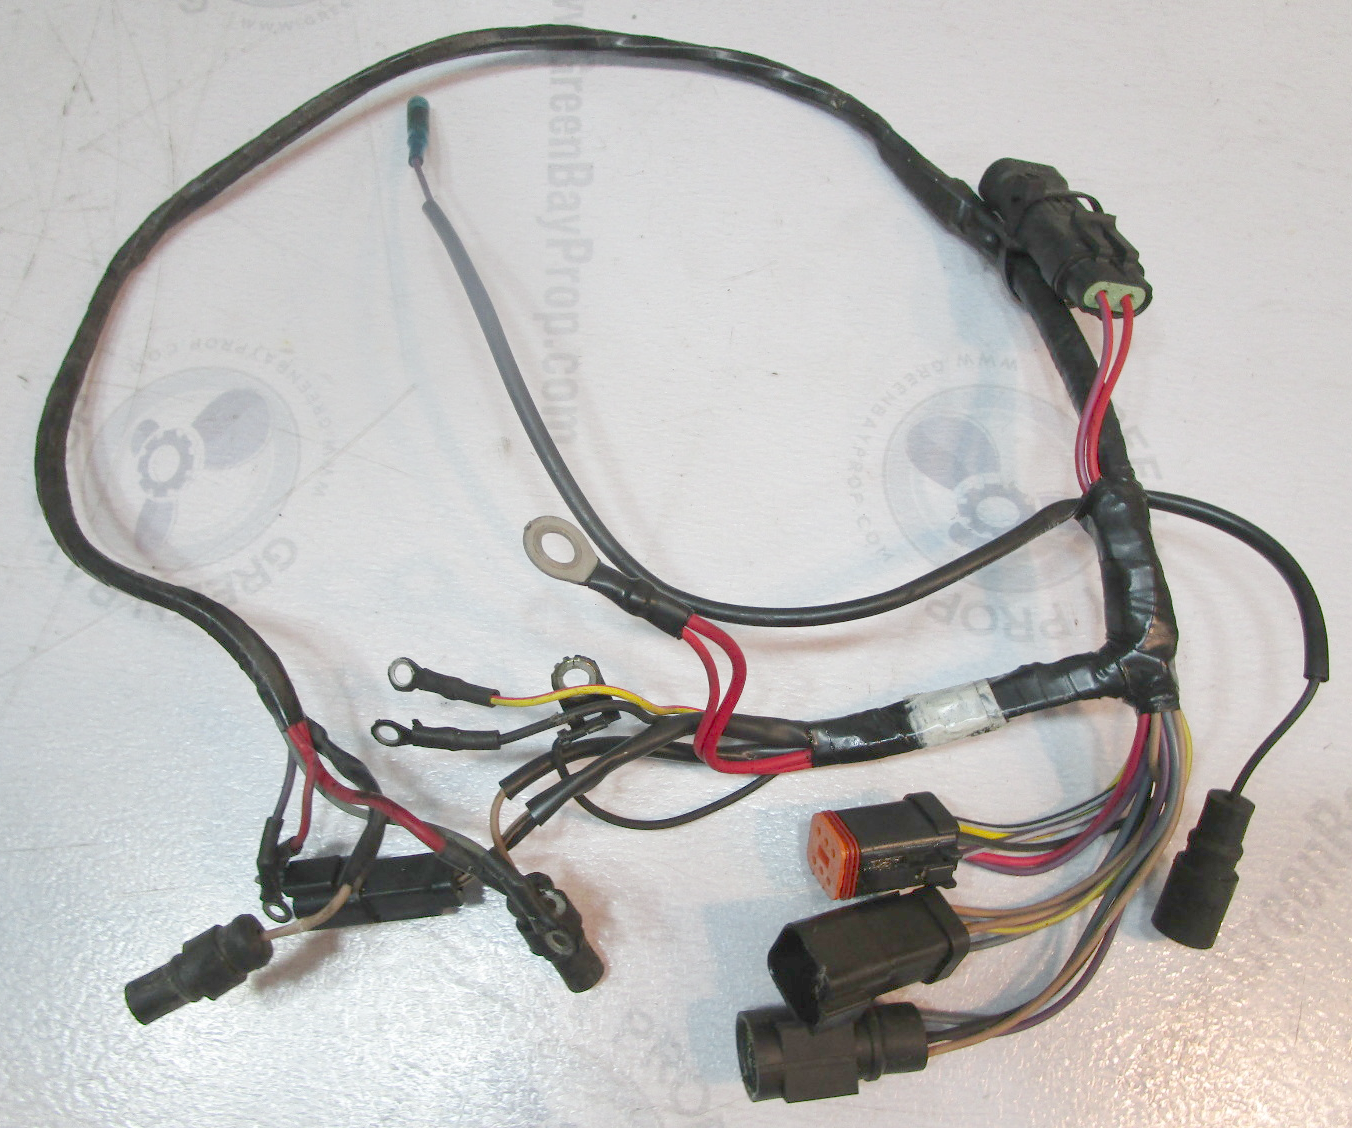 0586027 Motor Cable Wire Harness Evinrude/Johnson V4 88 ... on johnson outboard control box, johnson outboard gauges, johnson outboard engine paint, johnson outboard mounting bracket, johnson outboard rectifier, johnson outboard fuel lines, johnson outboard fuel pump kit, johnson outboard ignition coil, johnson v4 90 hp outboard, johnson outboard throttle cable, johnson outboard fuel filter, johnson outboard starter, johnson outboard wiring diagram, johnson outboard fuel hose, johnson outboard carburetor, johnson outboard tach wiring, johnson outboard wiring coil, johnson outboard stator, johnson outboard shifter, johnson outboard manual,